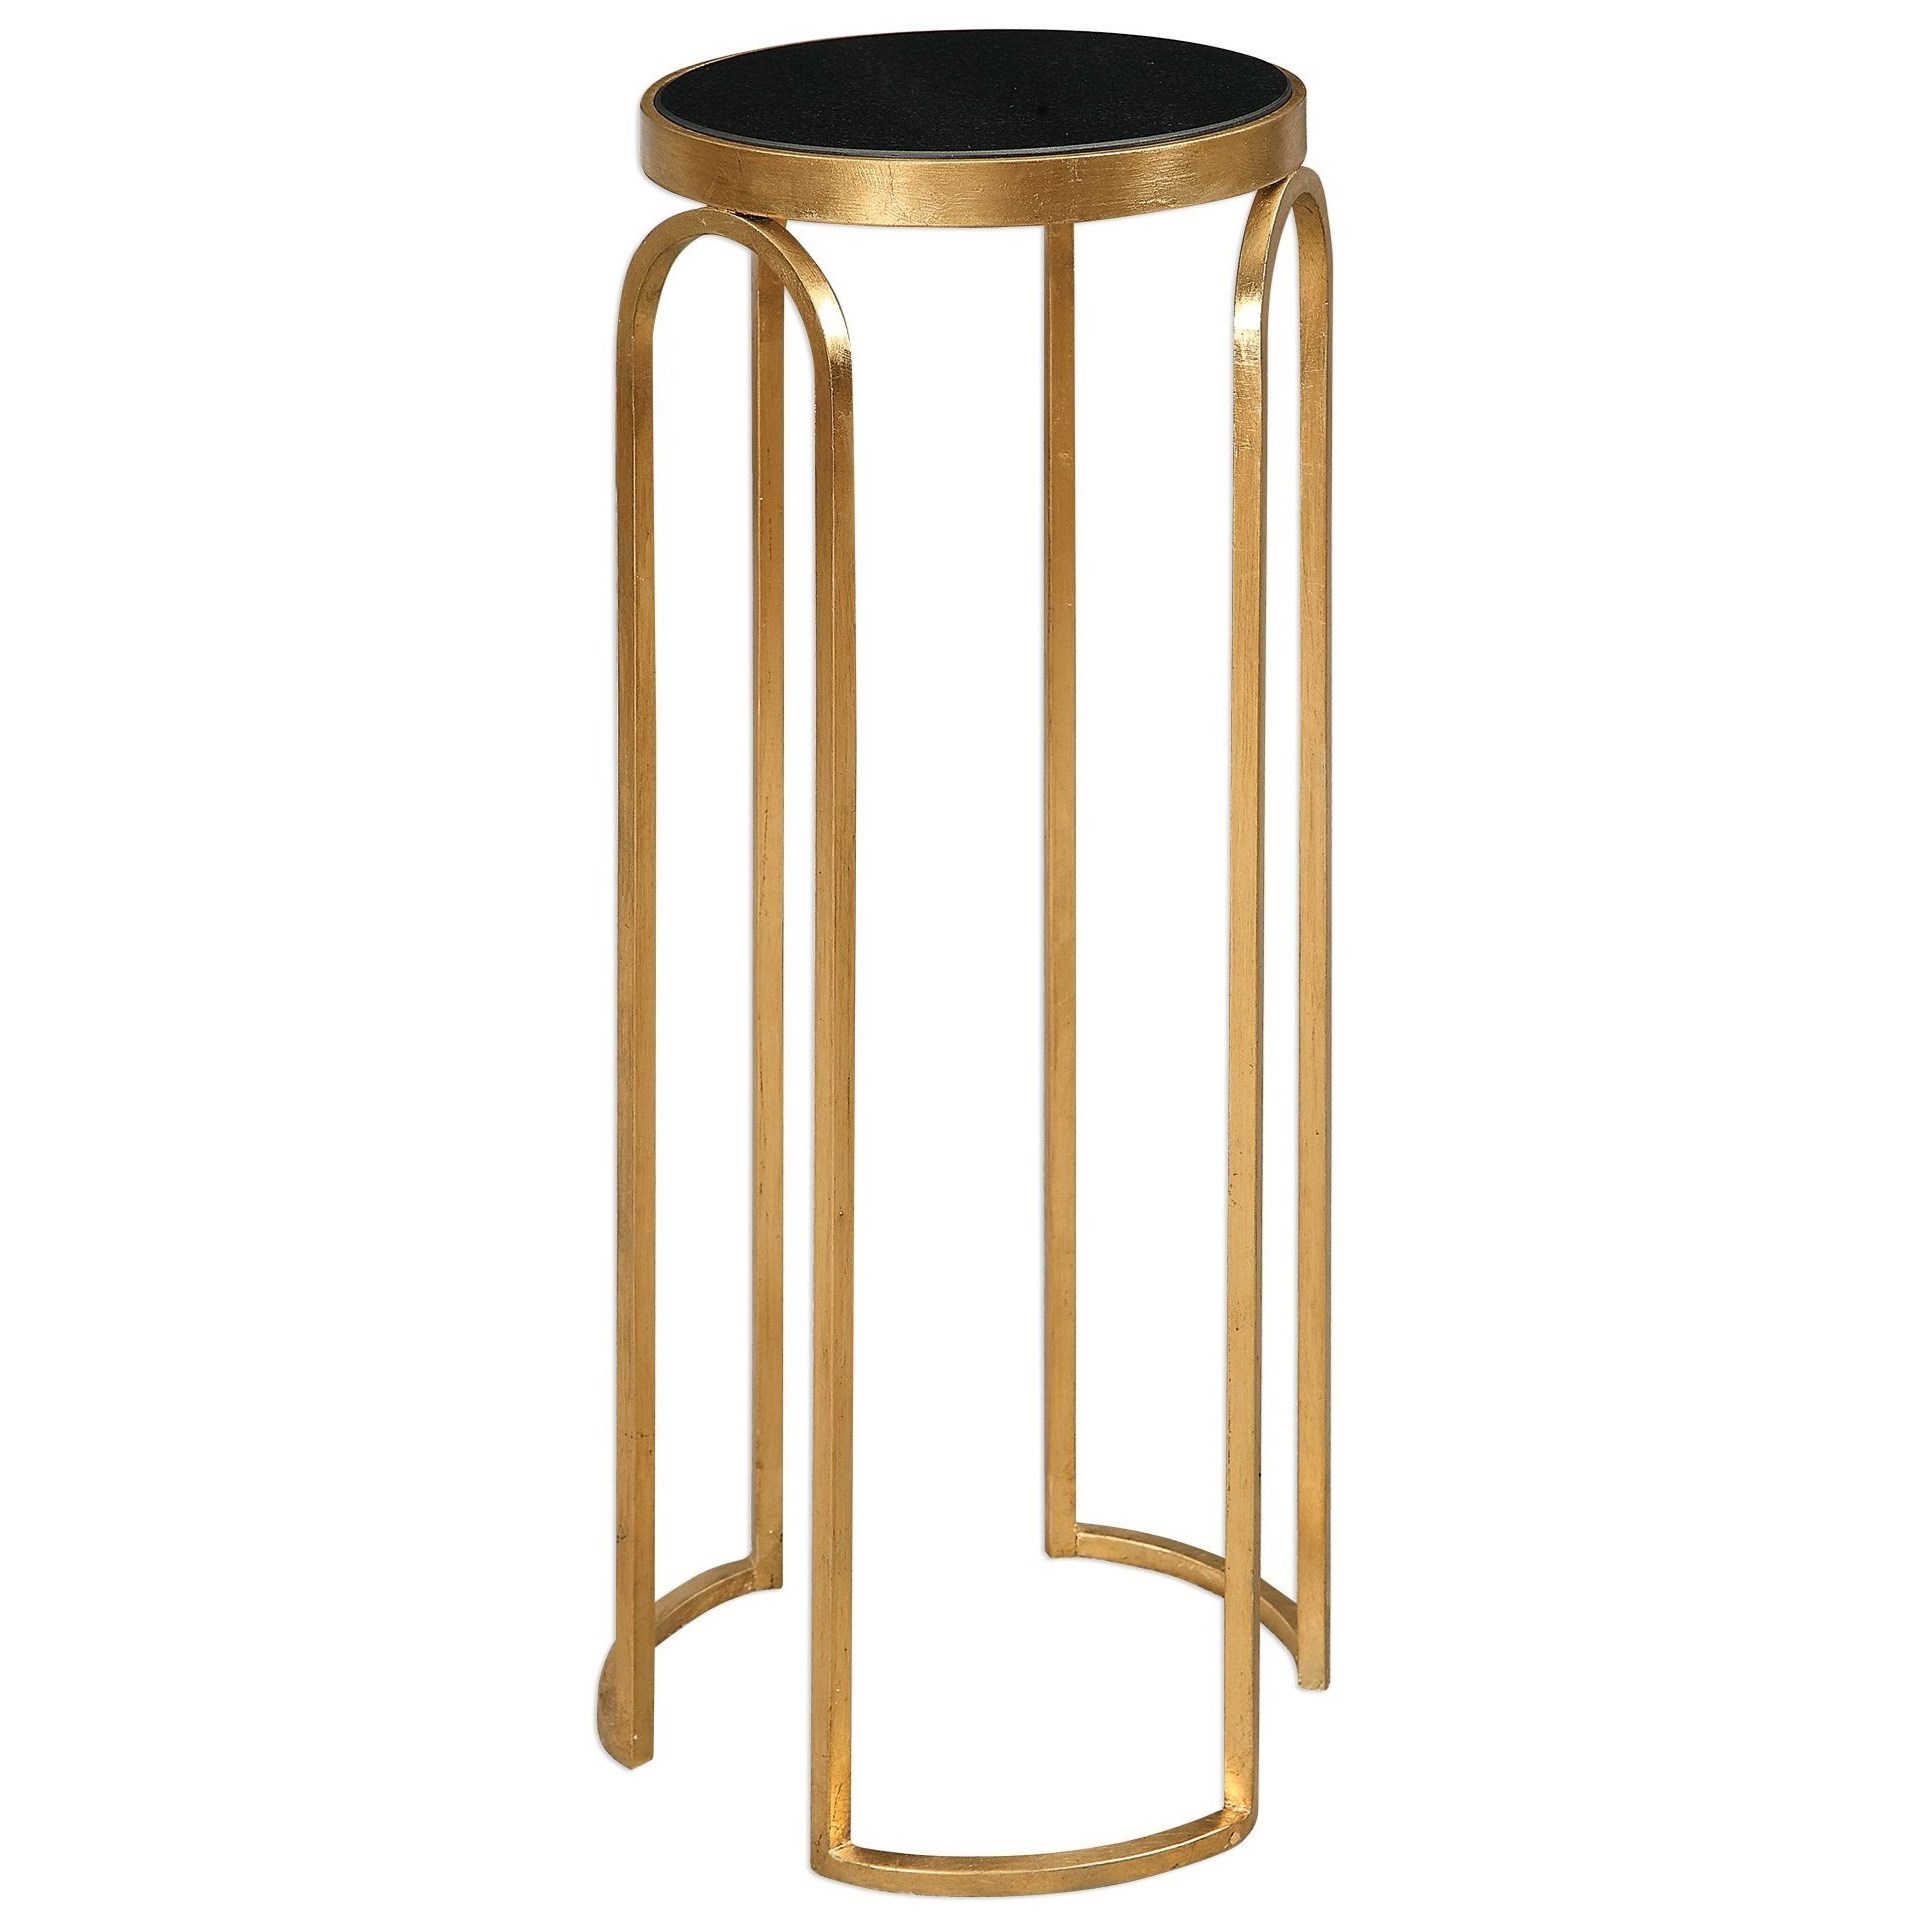 uttermost accent furniture occasional tables novalie gold products color table small turquoise inch square end blue living room home accents dishes canopy umbrella exterior entry